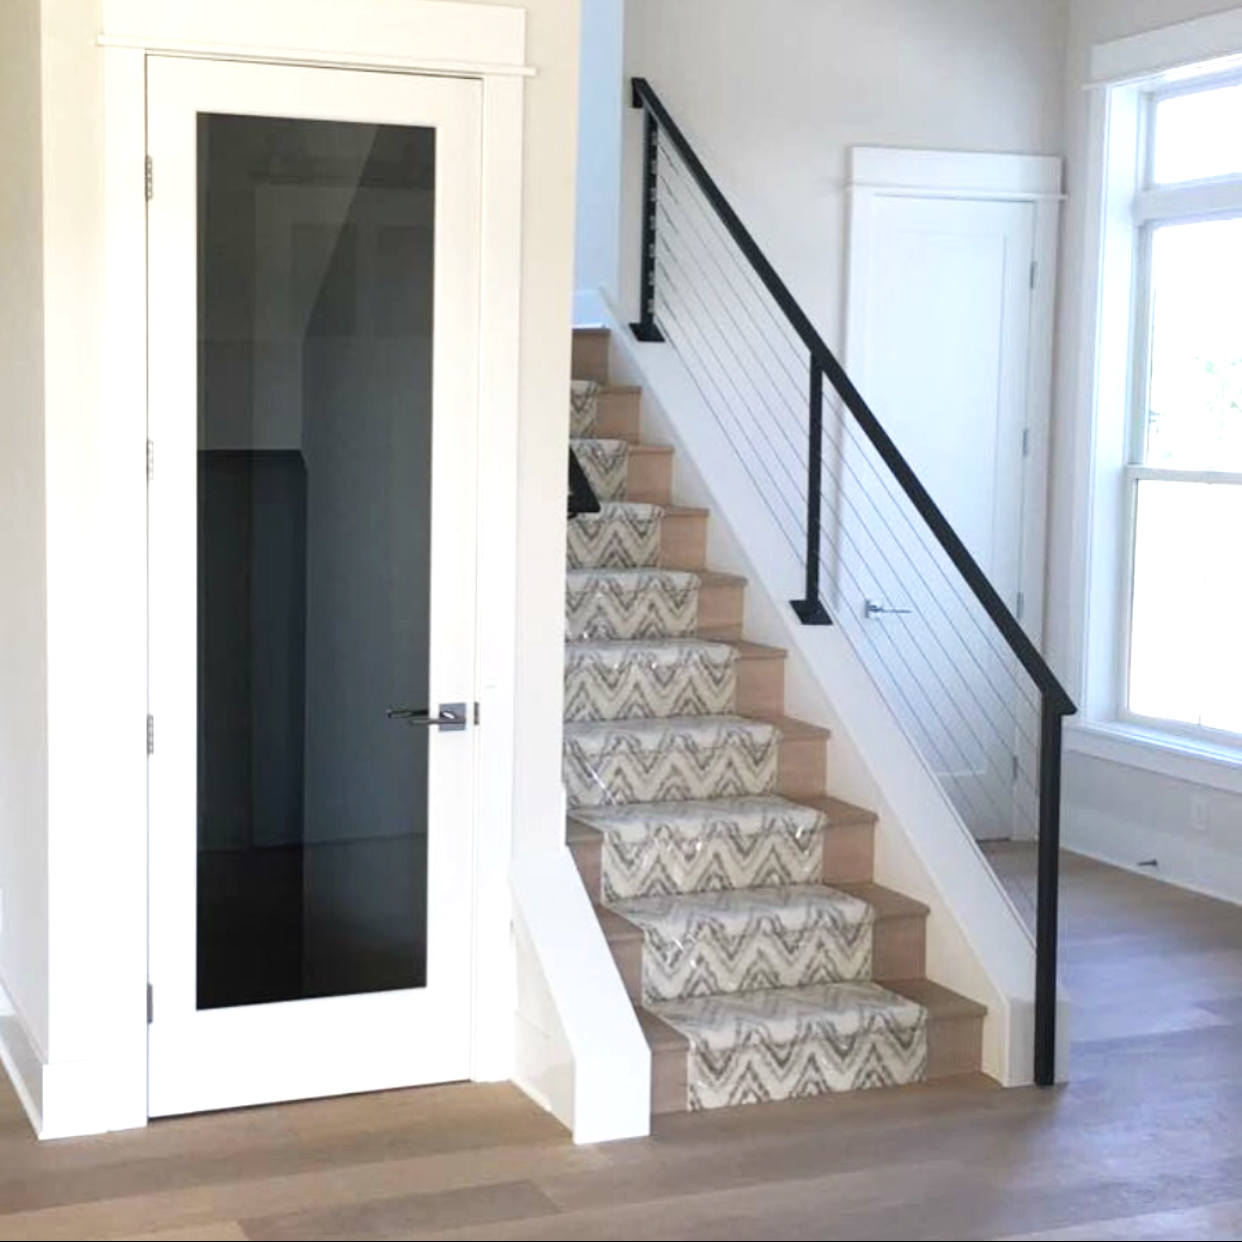 Carpet Options For Stairs There Are Several Options For Stair Runners Stairs Patterned